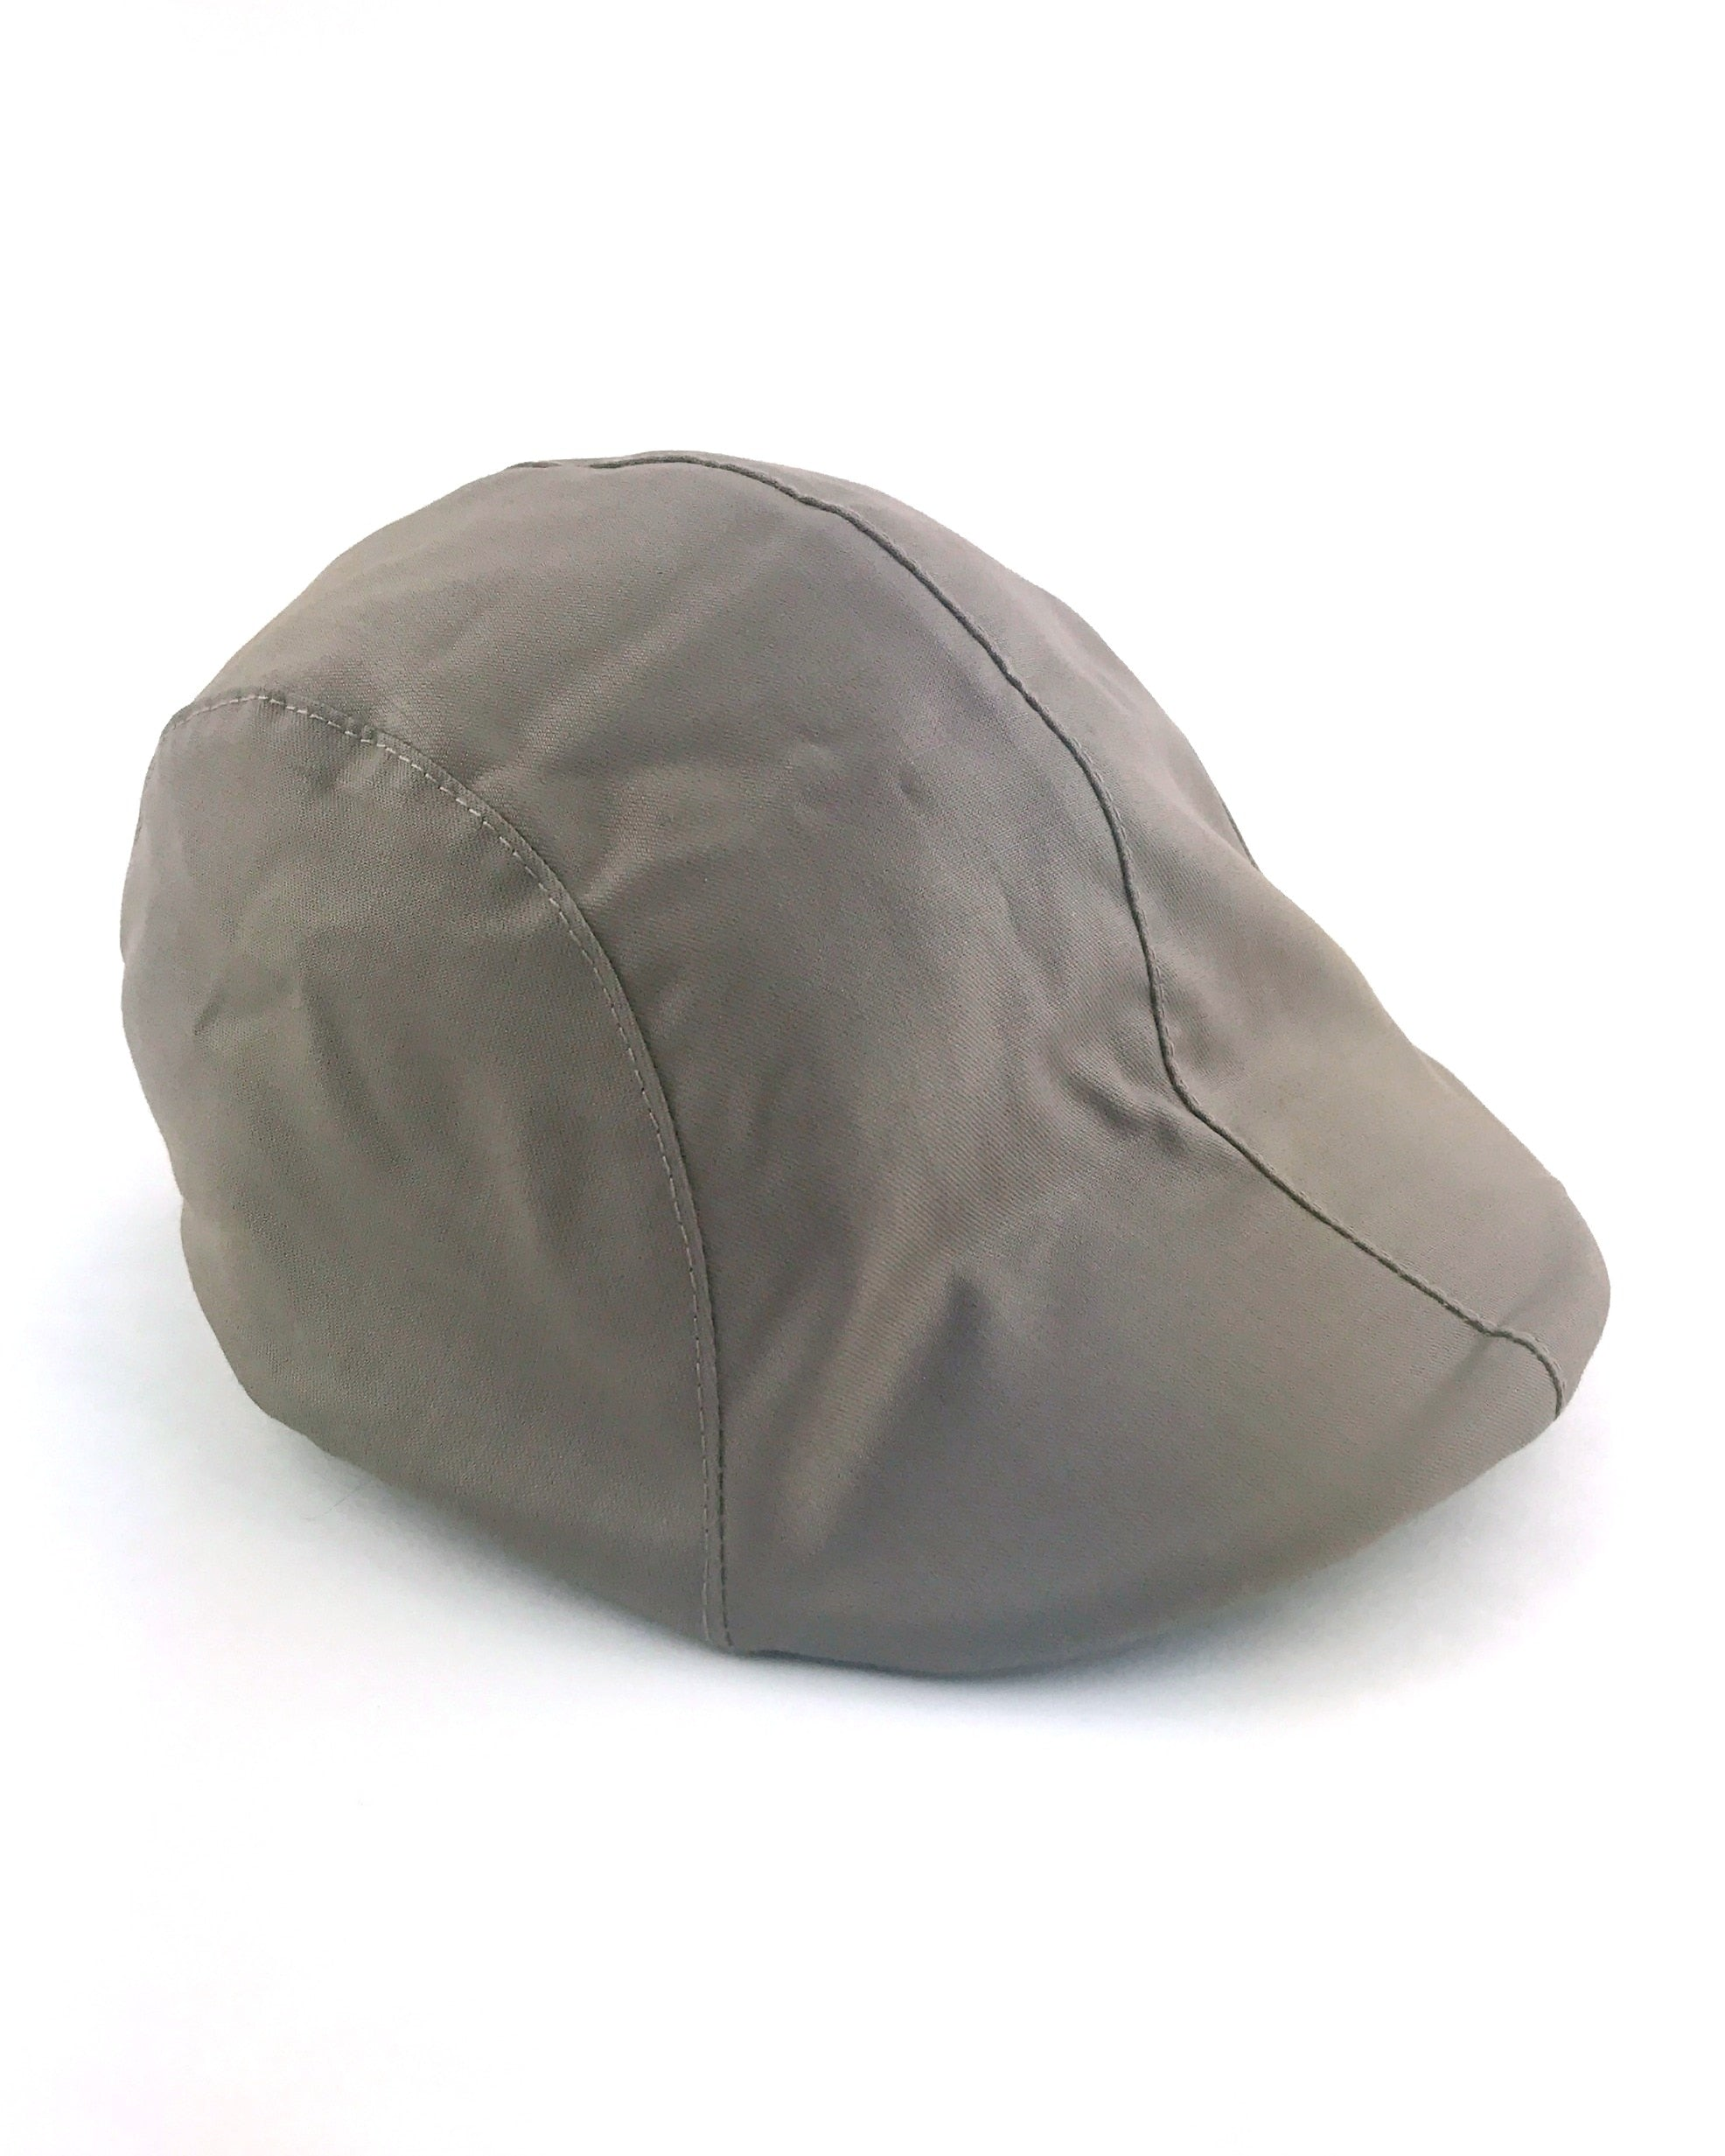 tan-newsboy-cap.jpg